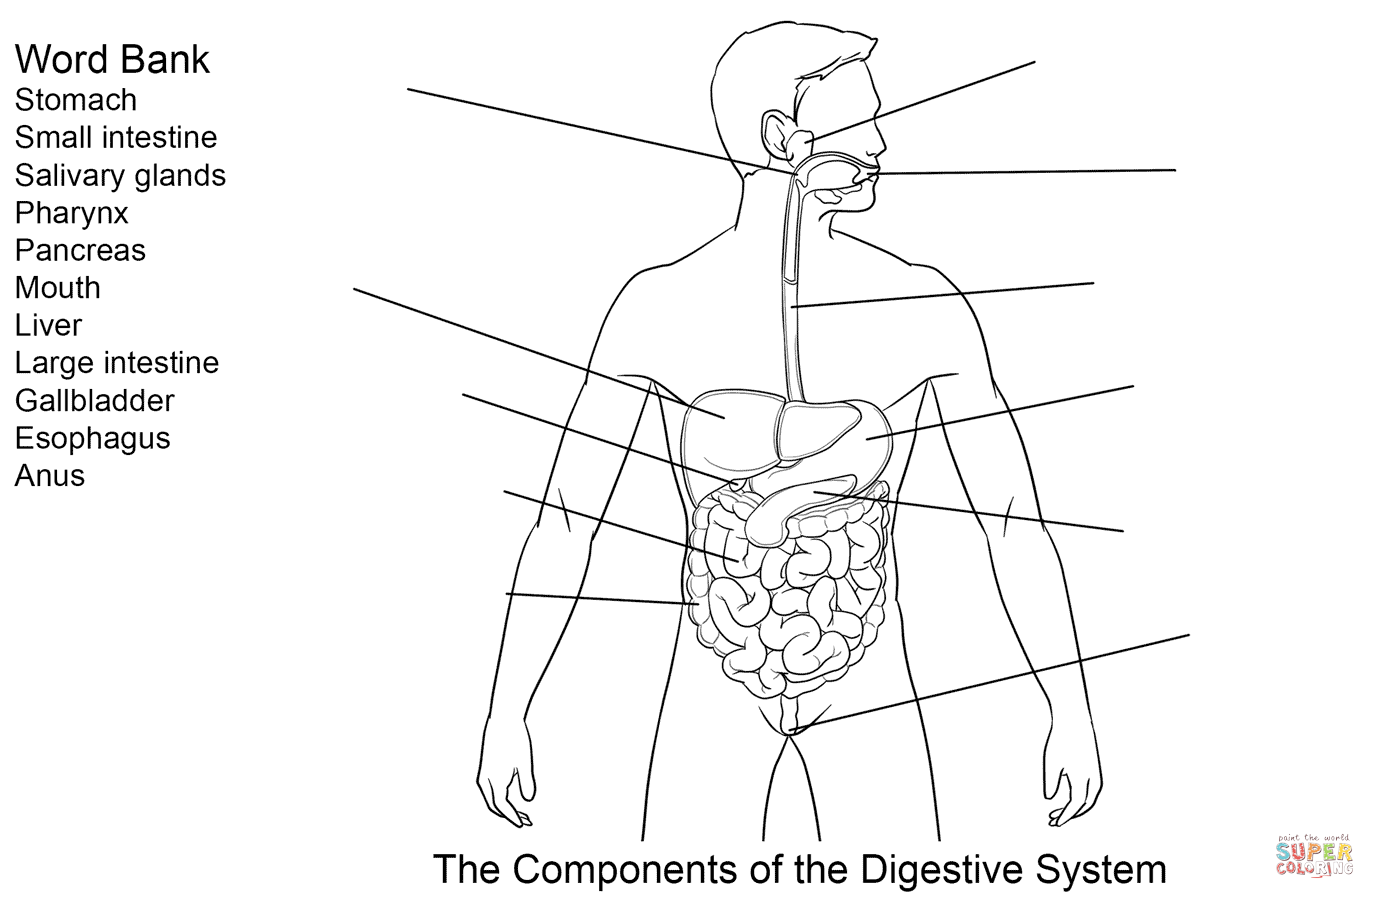 hight resolution of Components of Digestive System Worksheet Coloring page   Free Printable  Coloring Pages   Digestive system diagram